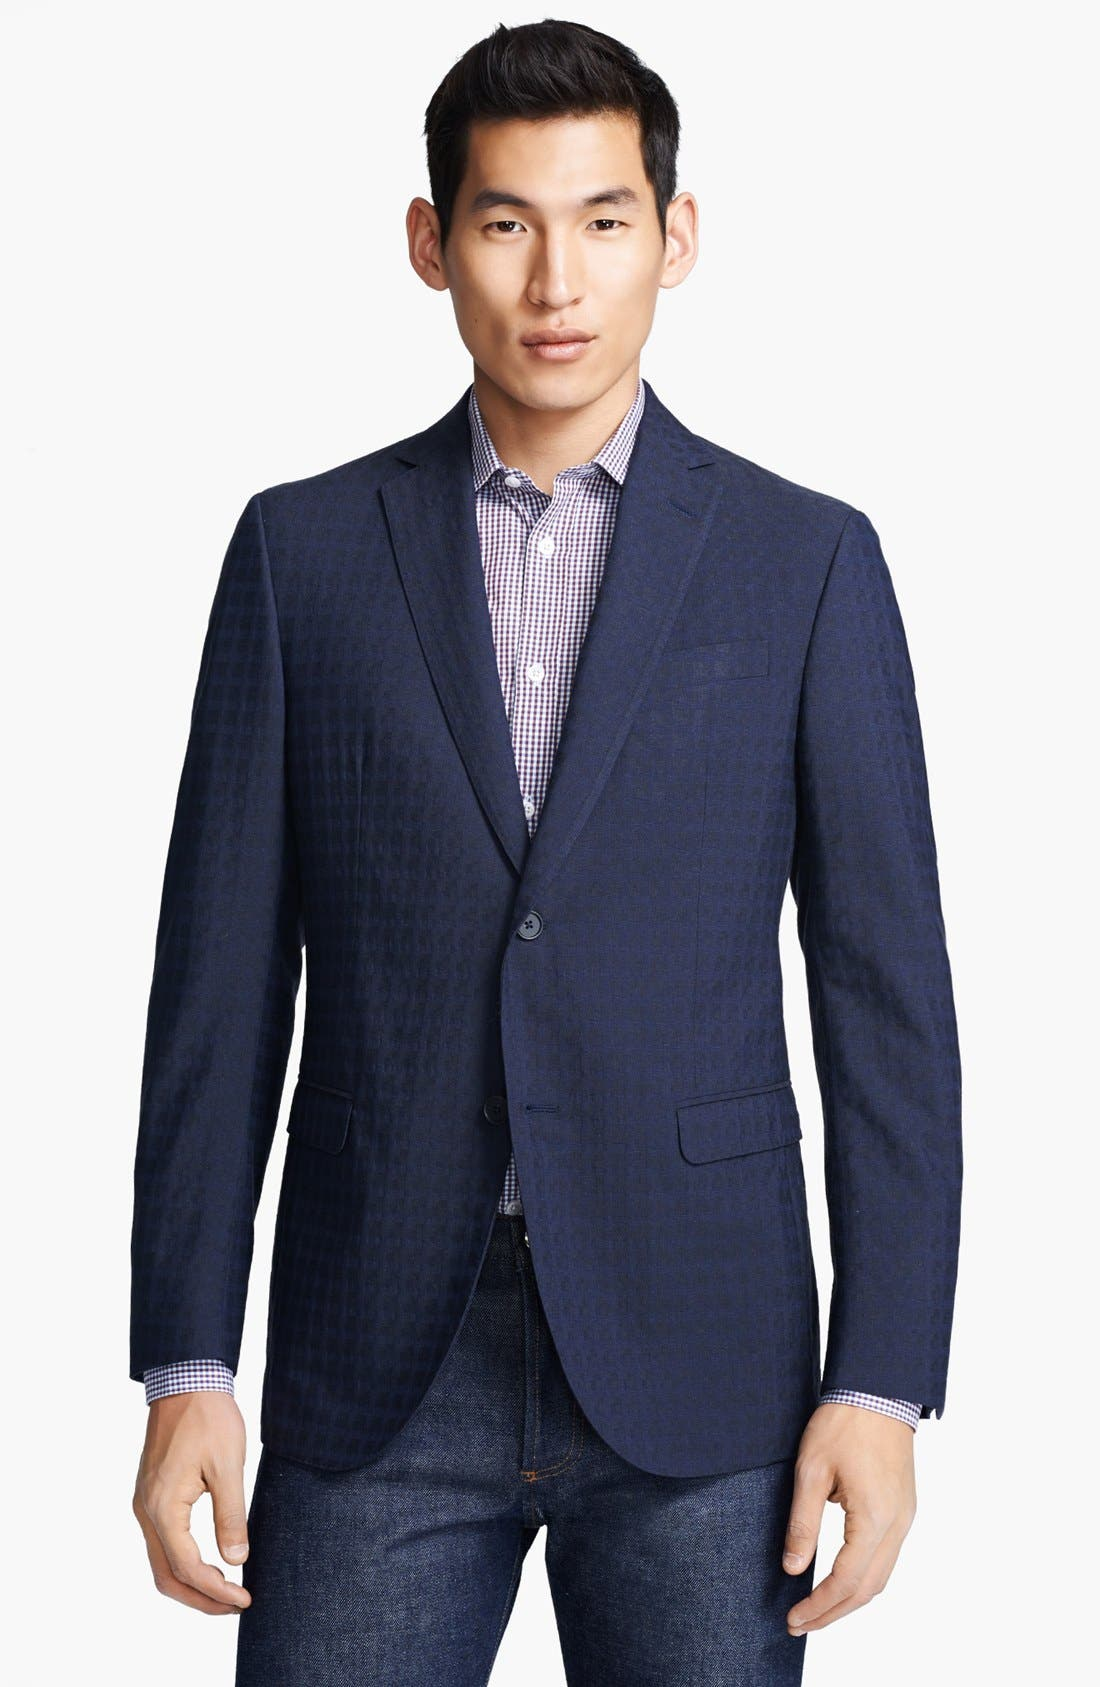 Main Image - Z Zegna Navy Jacquard Check Wool Sportcoat